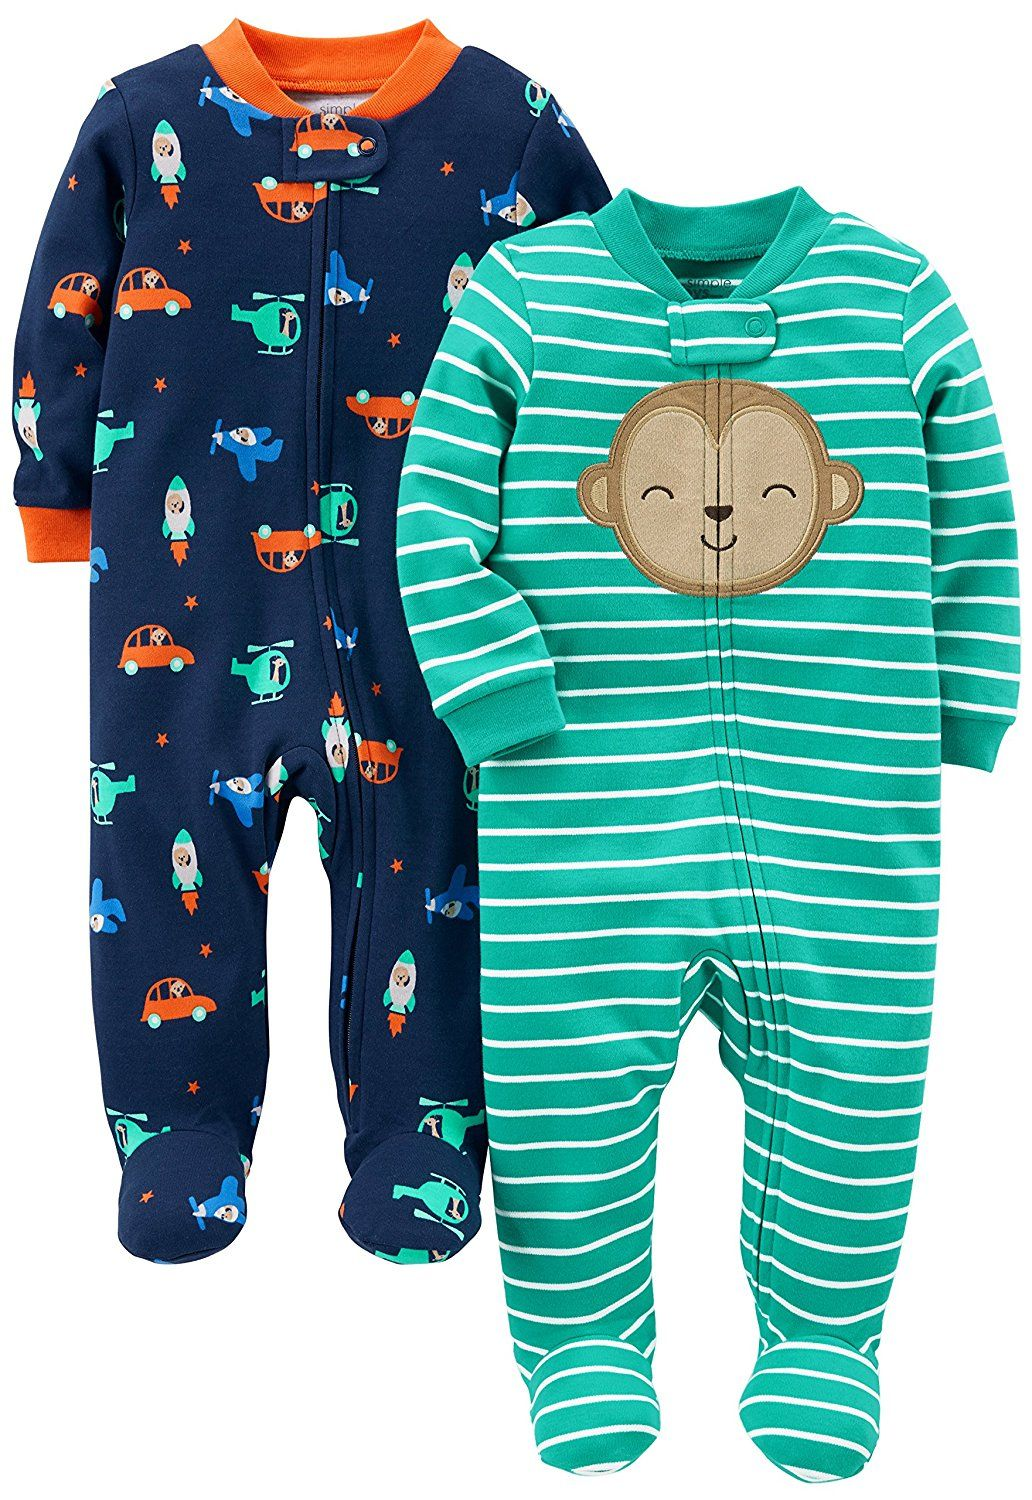 22d343f7052d Simple Joys by Carter s Baby Boys  2-Pack Cotton Footed Sleep and ...